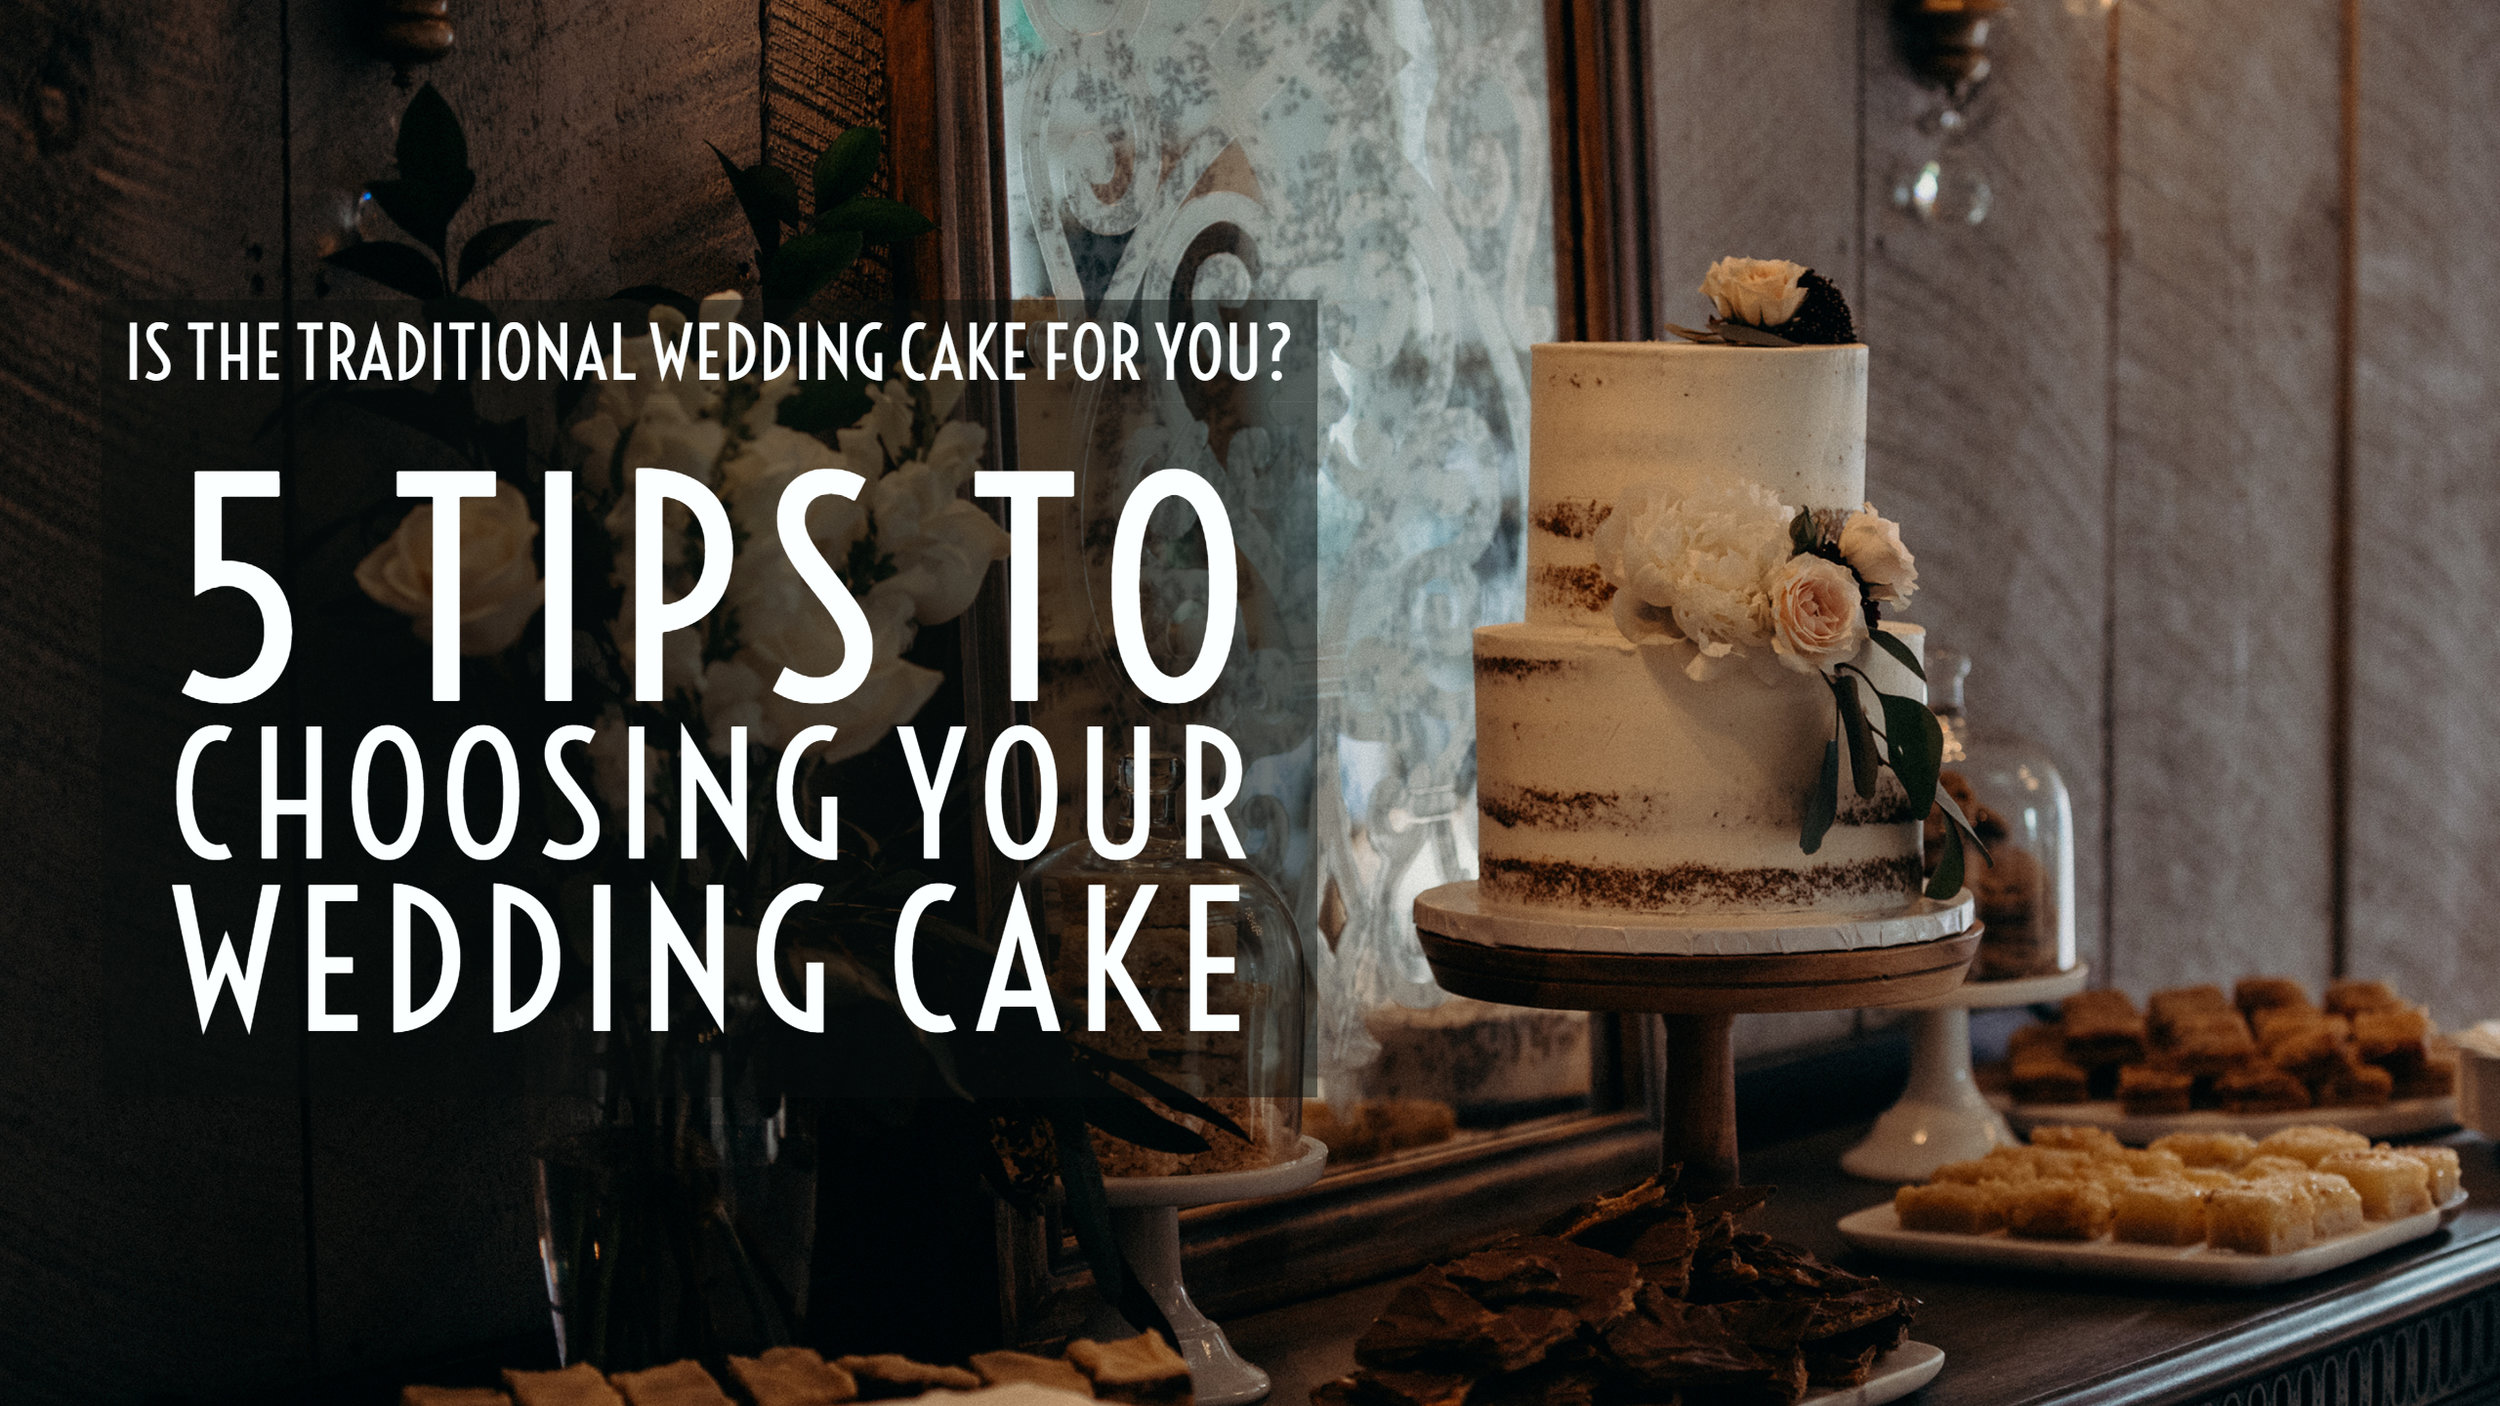 5 tips to choosing a wedding cake